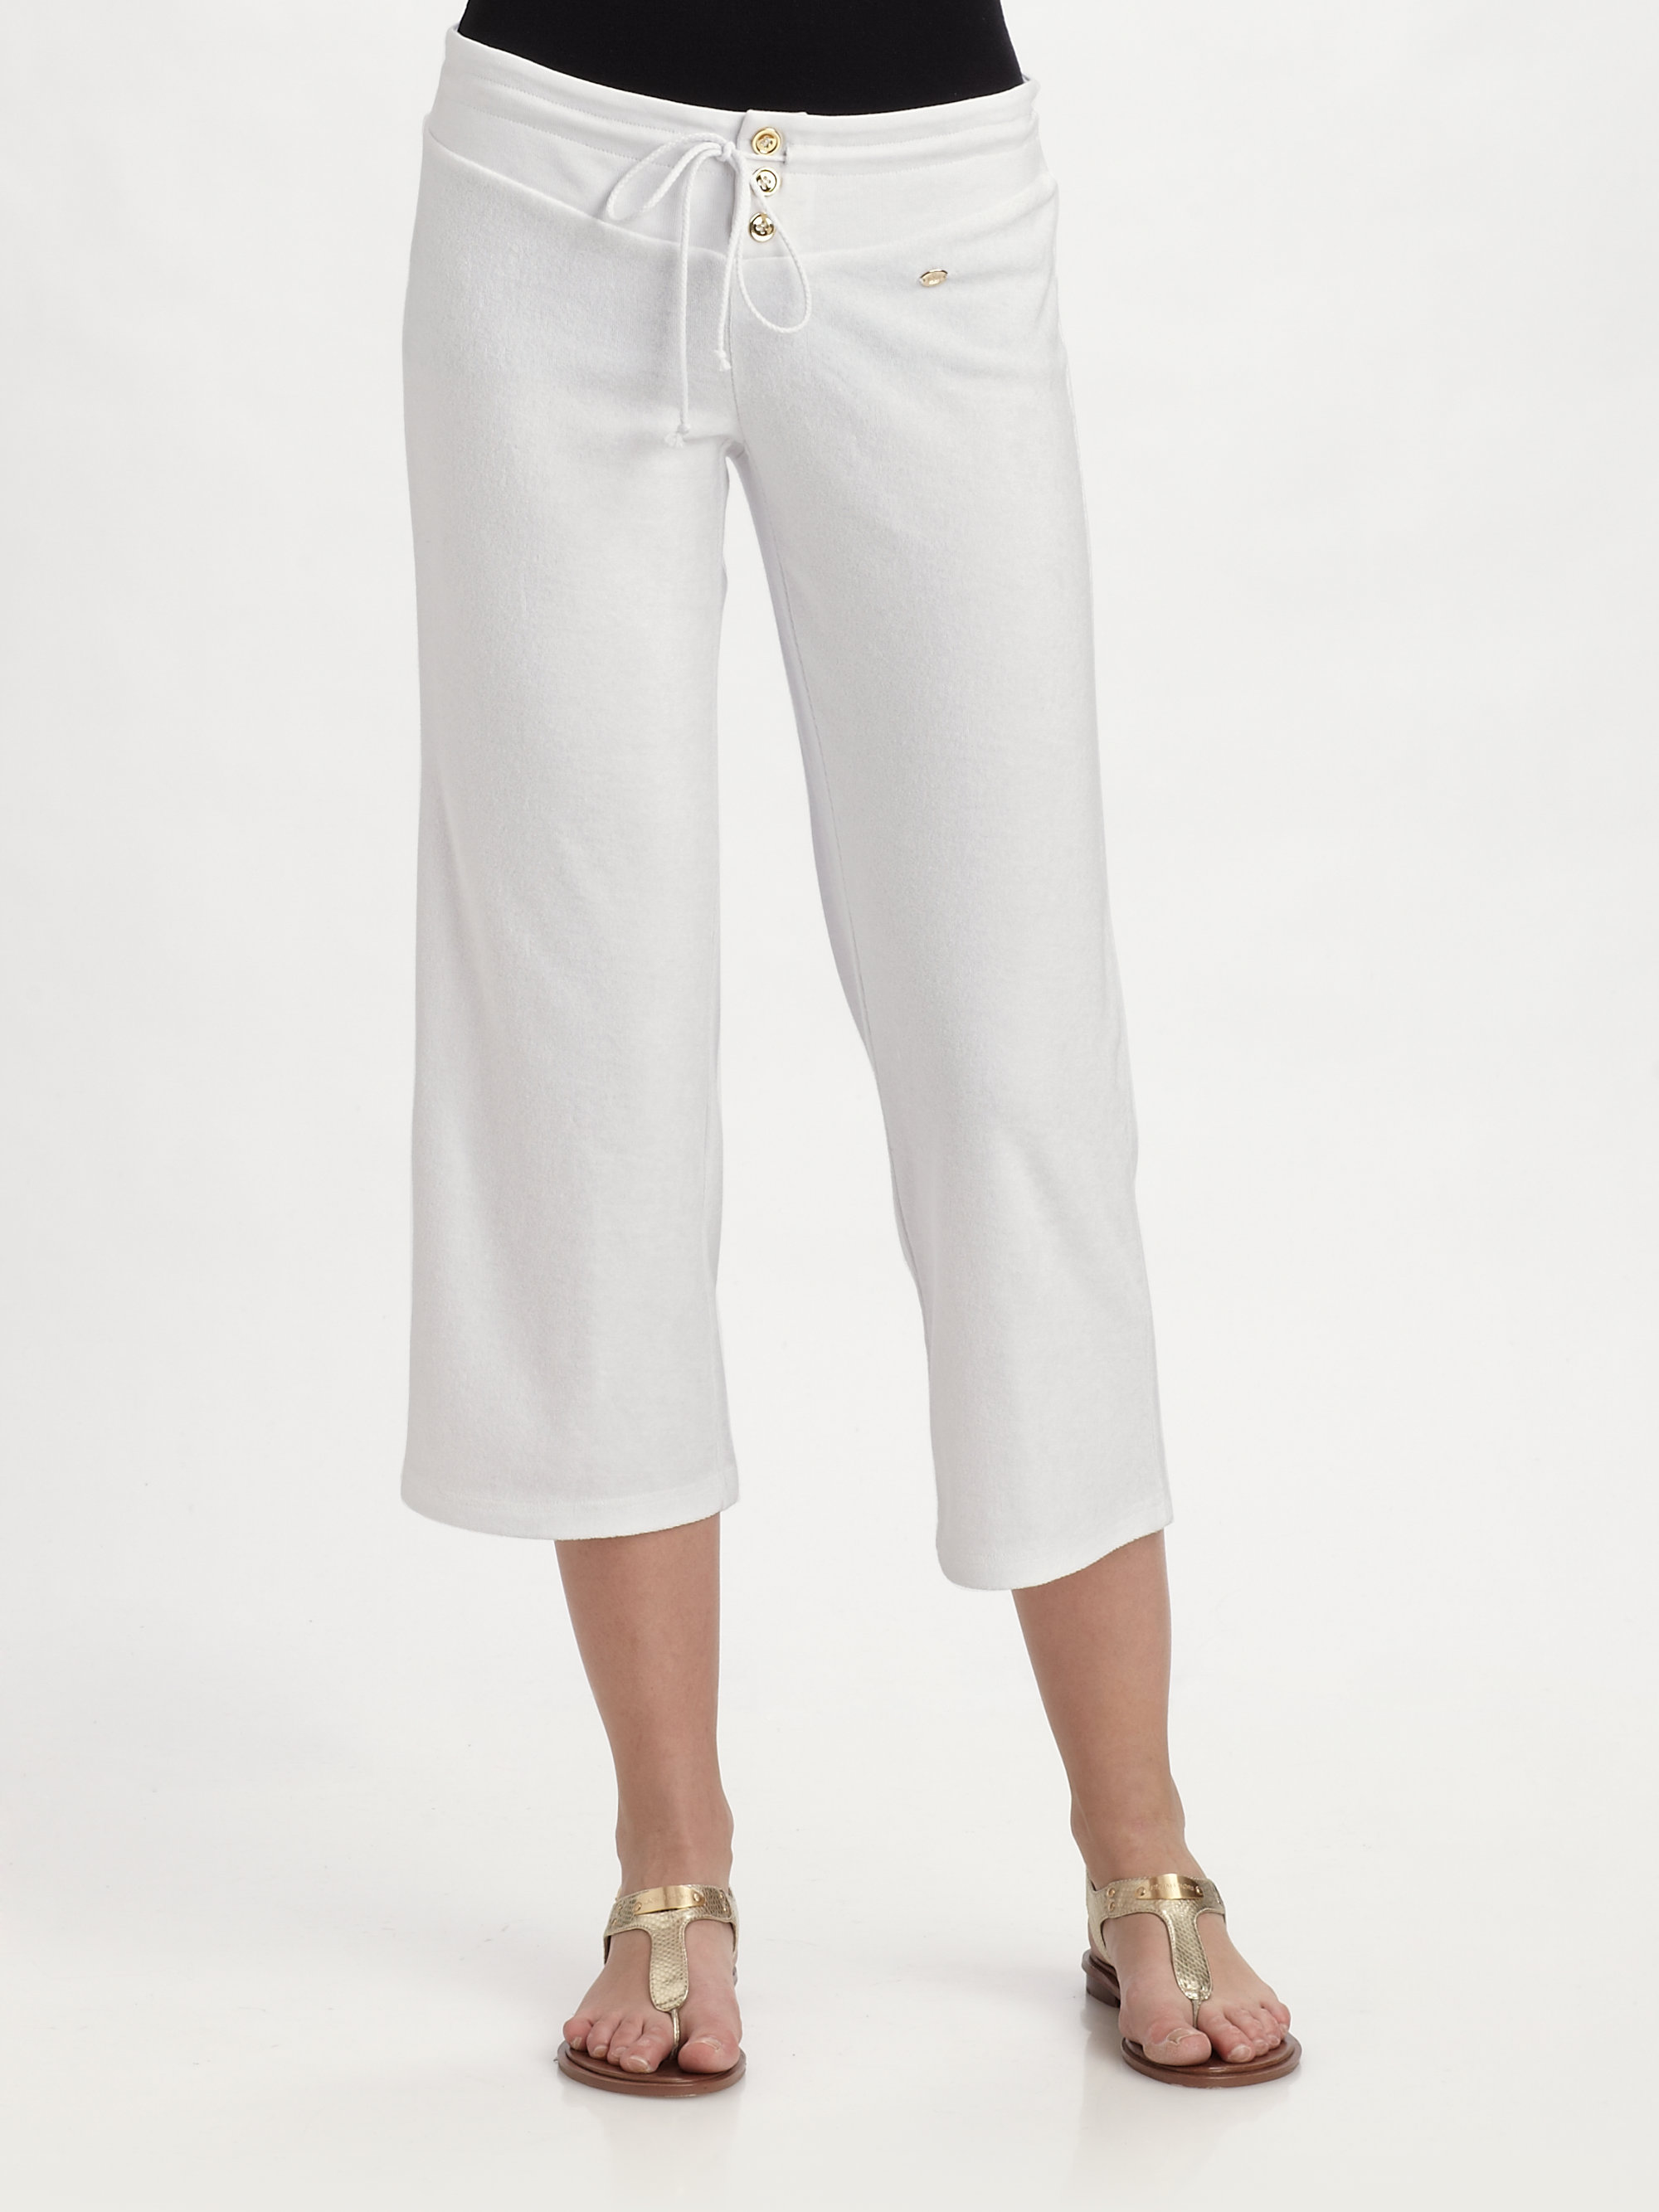 Lyst - Juicy Couture Terry Cropped Pants in White ed65c455751c